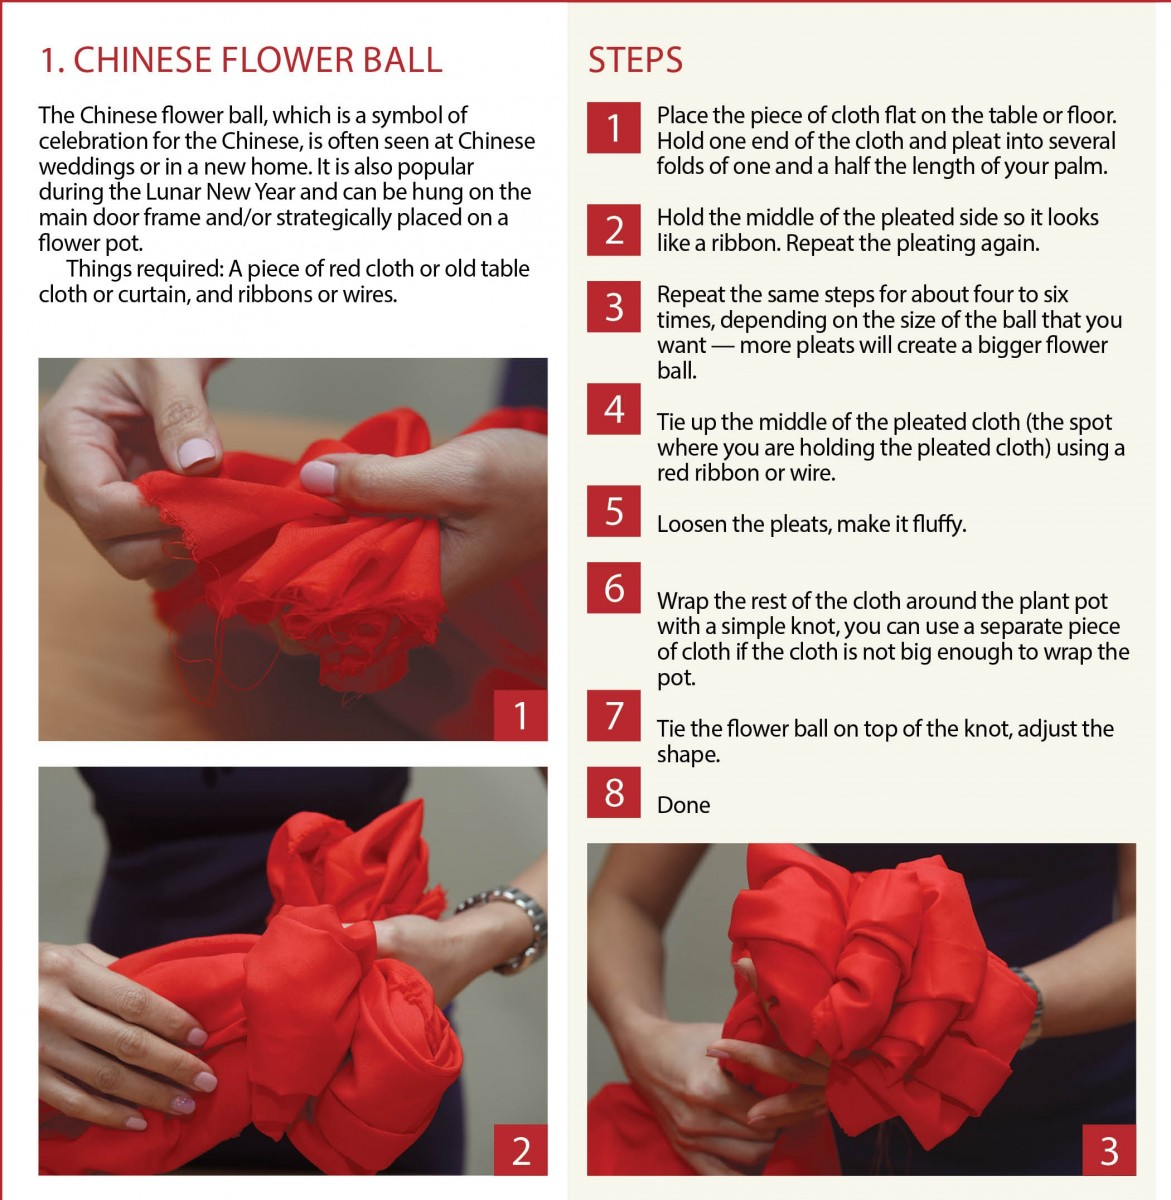 Chinese Flower Ball 1